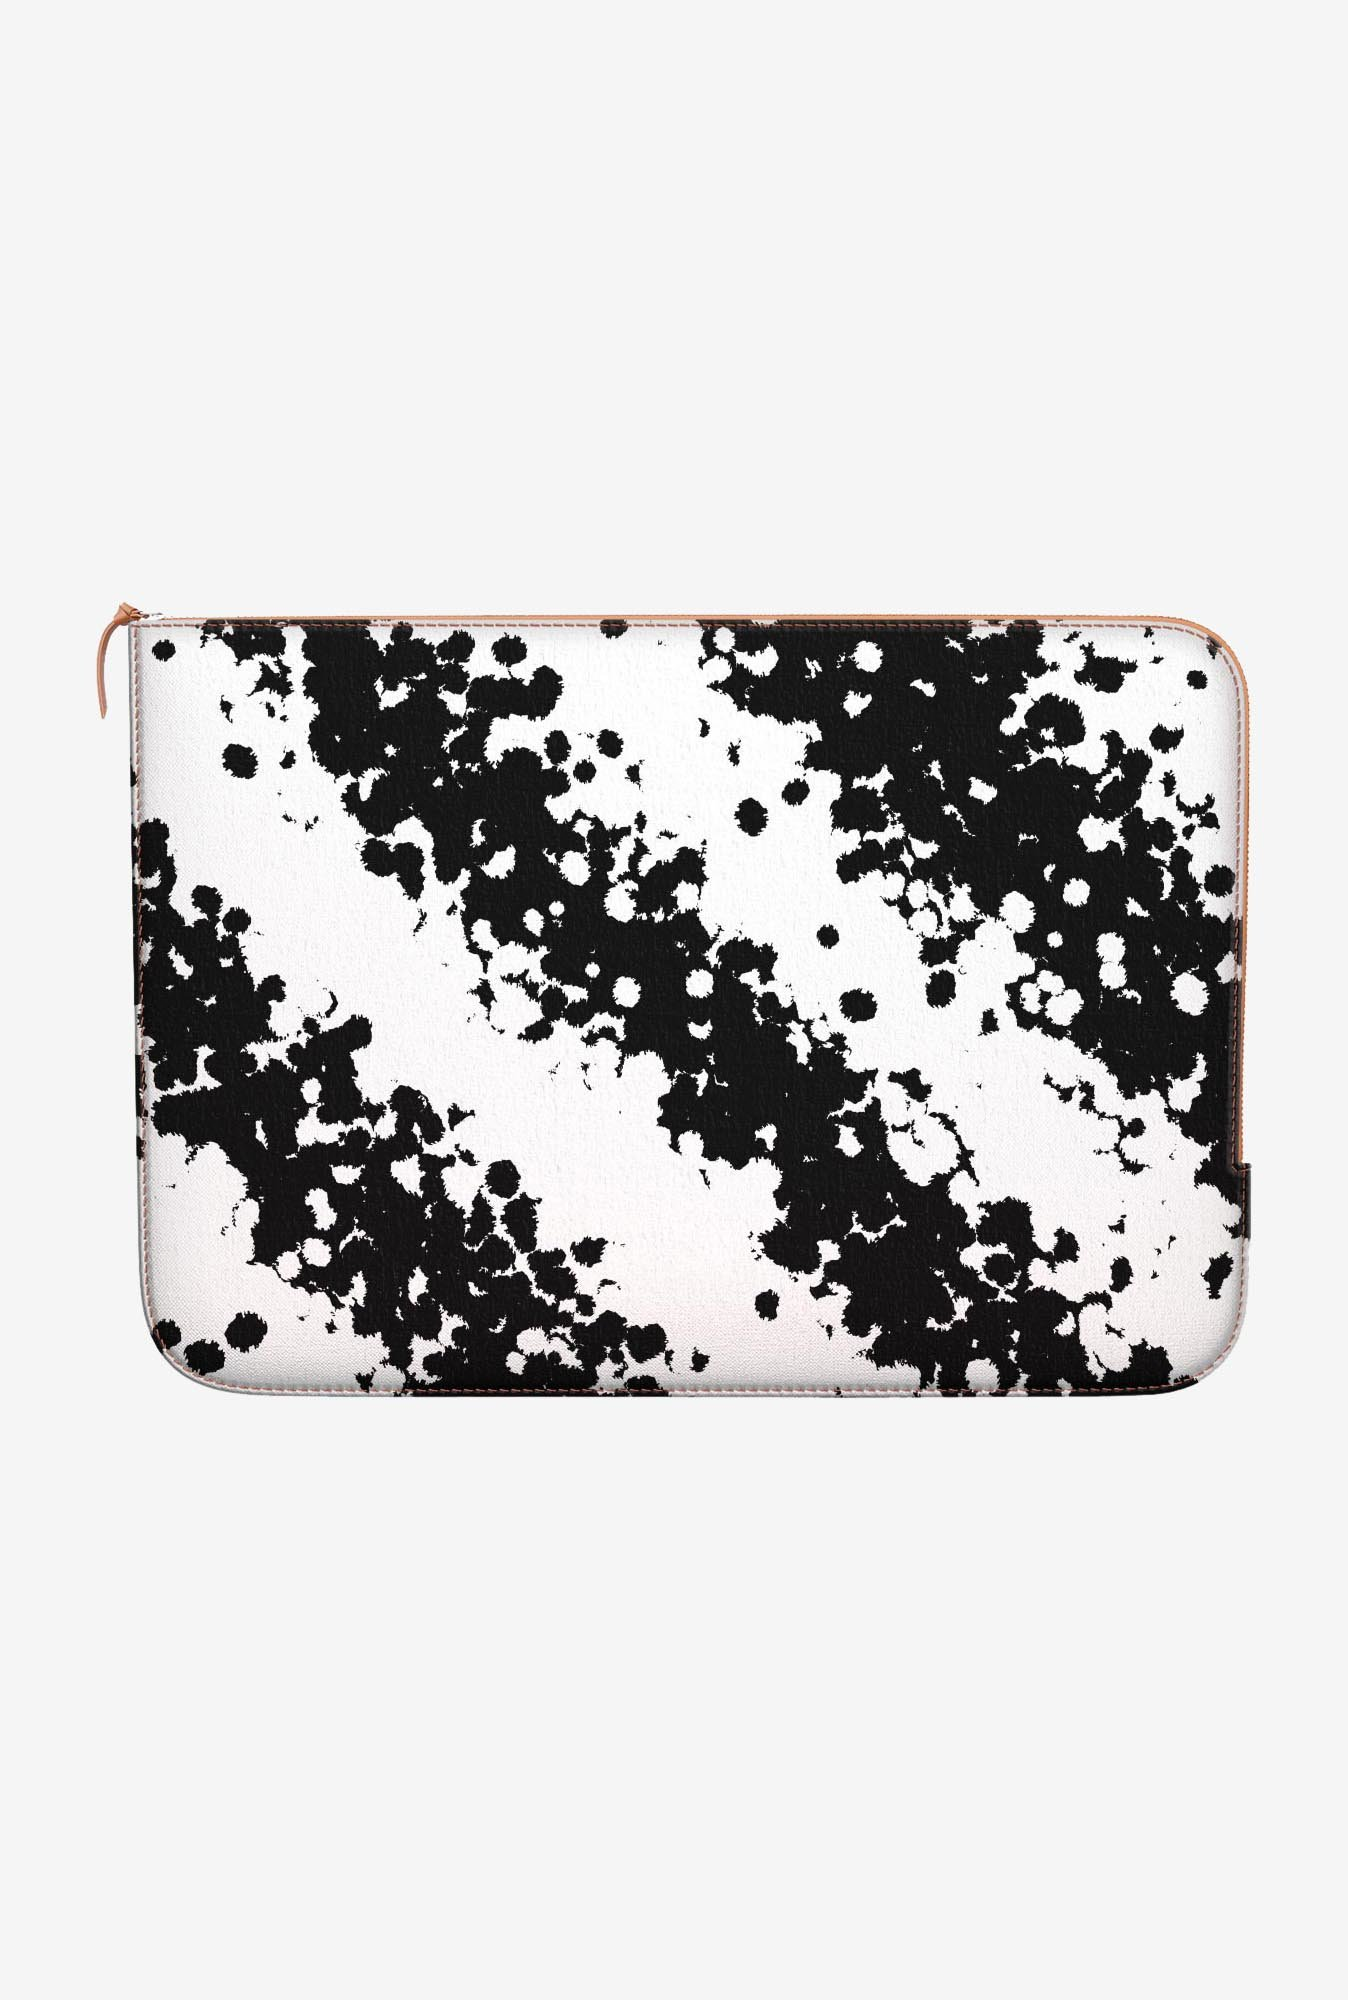 DailyObjects Polka Stripes MacBook Air 11 Zippered Sleeve